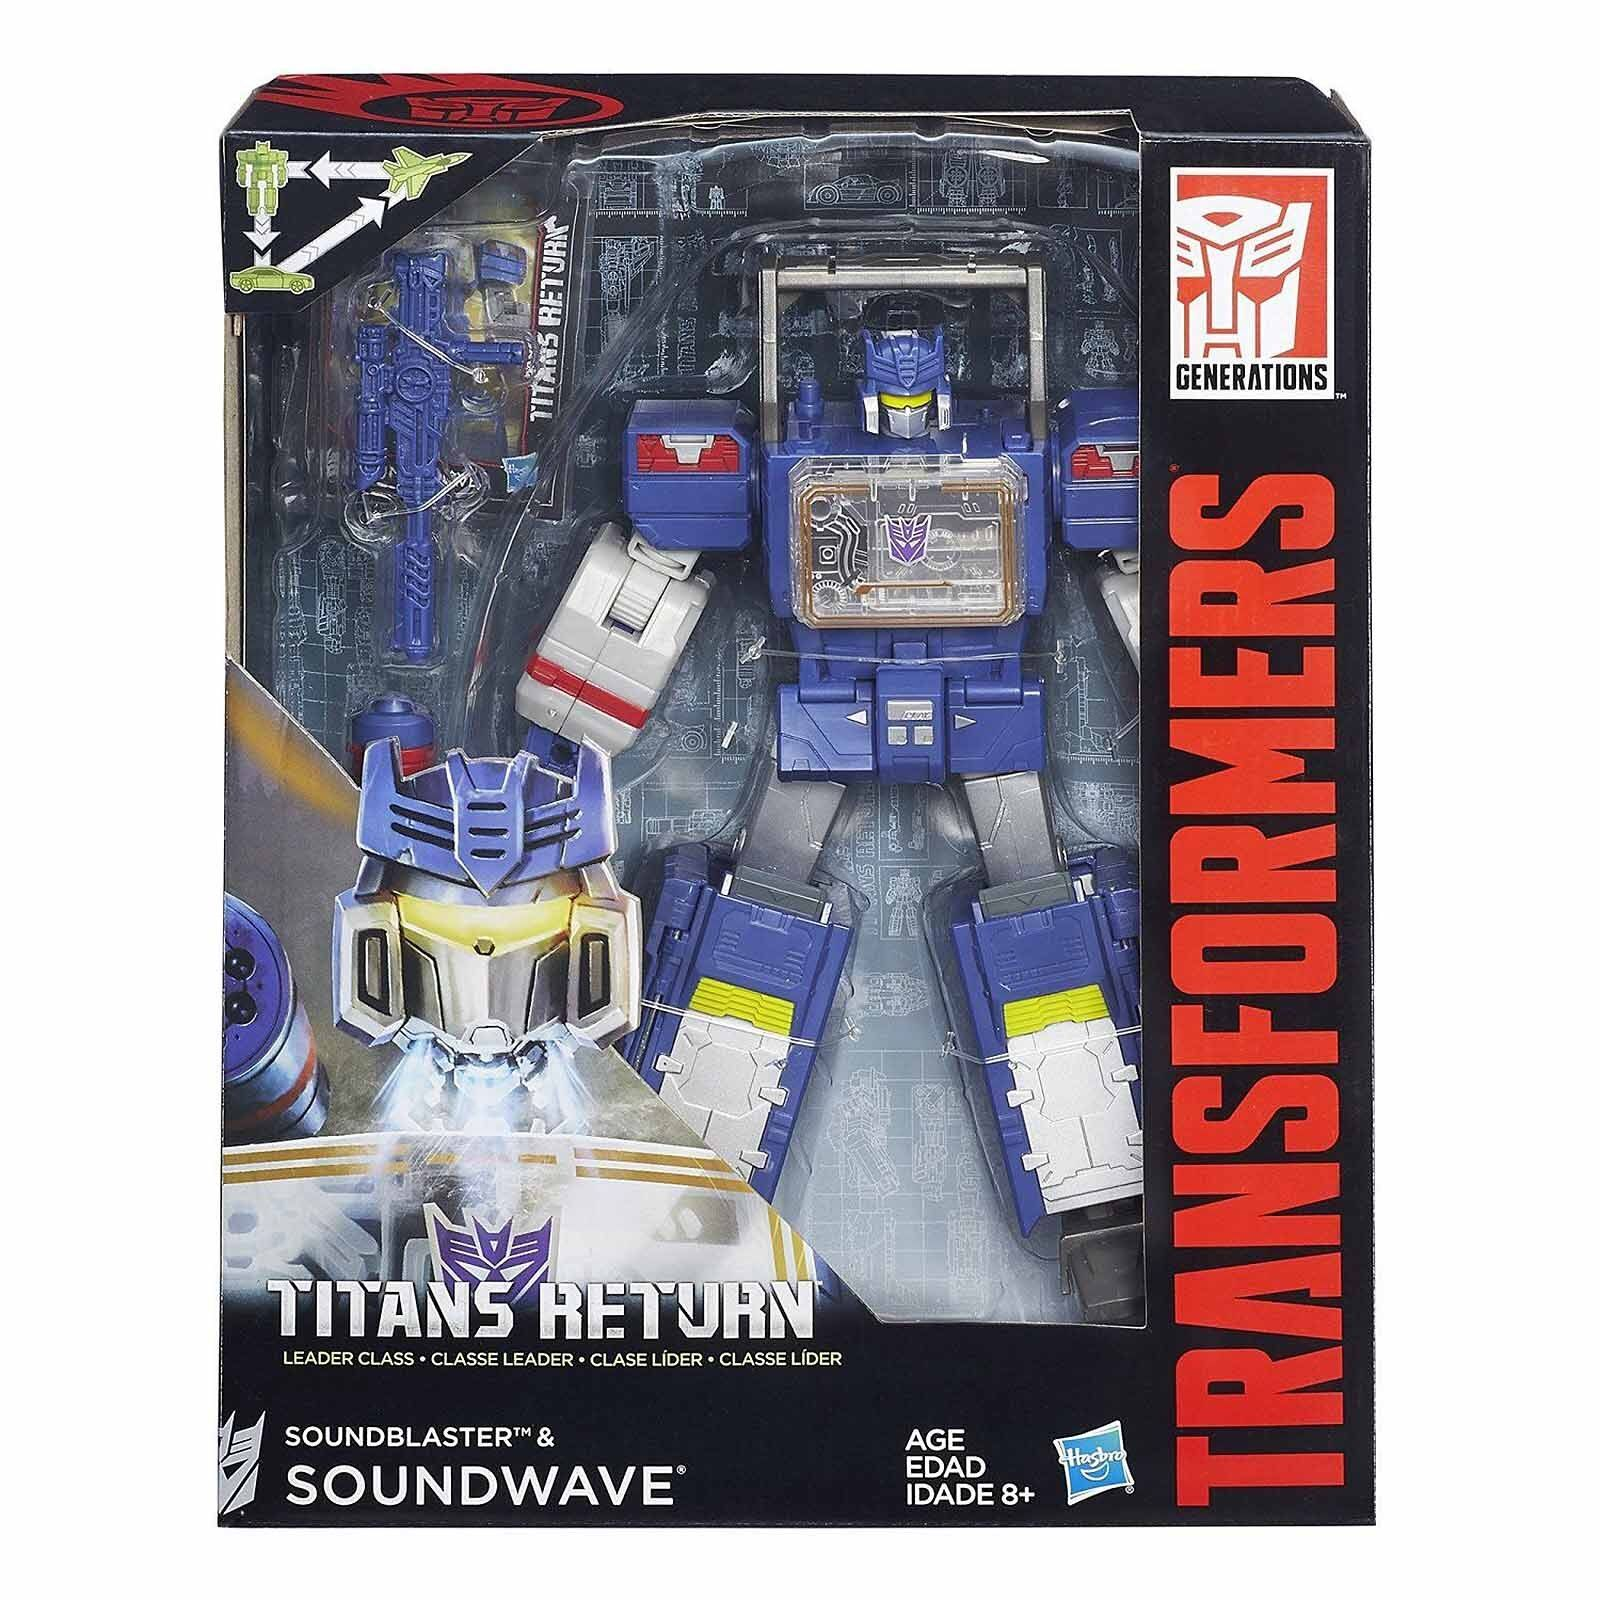 NEW Transformers Generations Titans Return Leader Class SOUNDWAVE Soundblaster